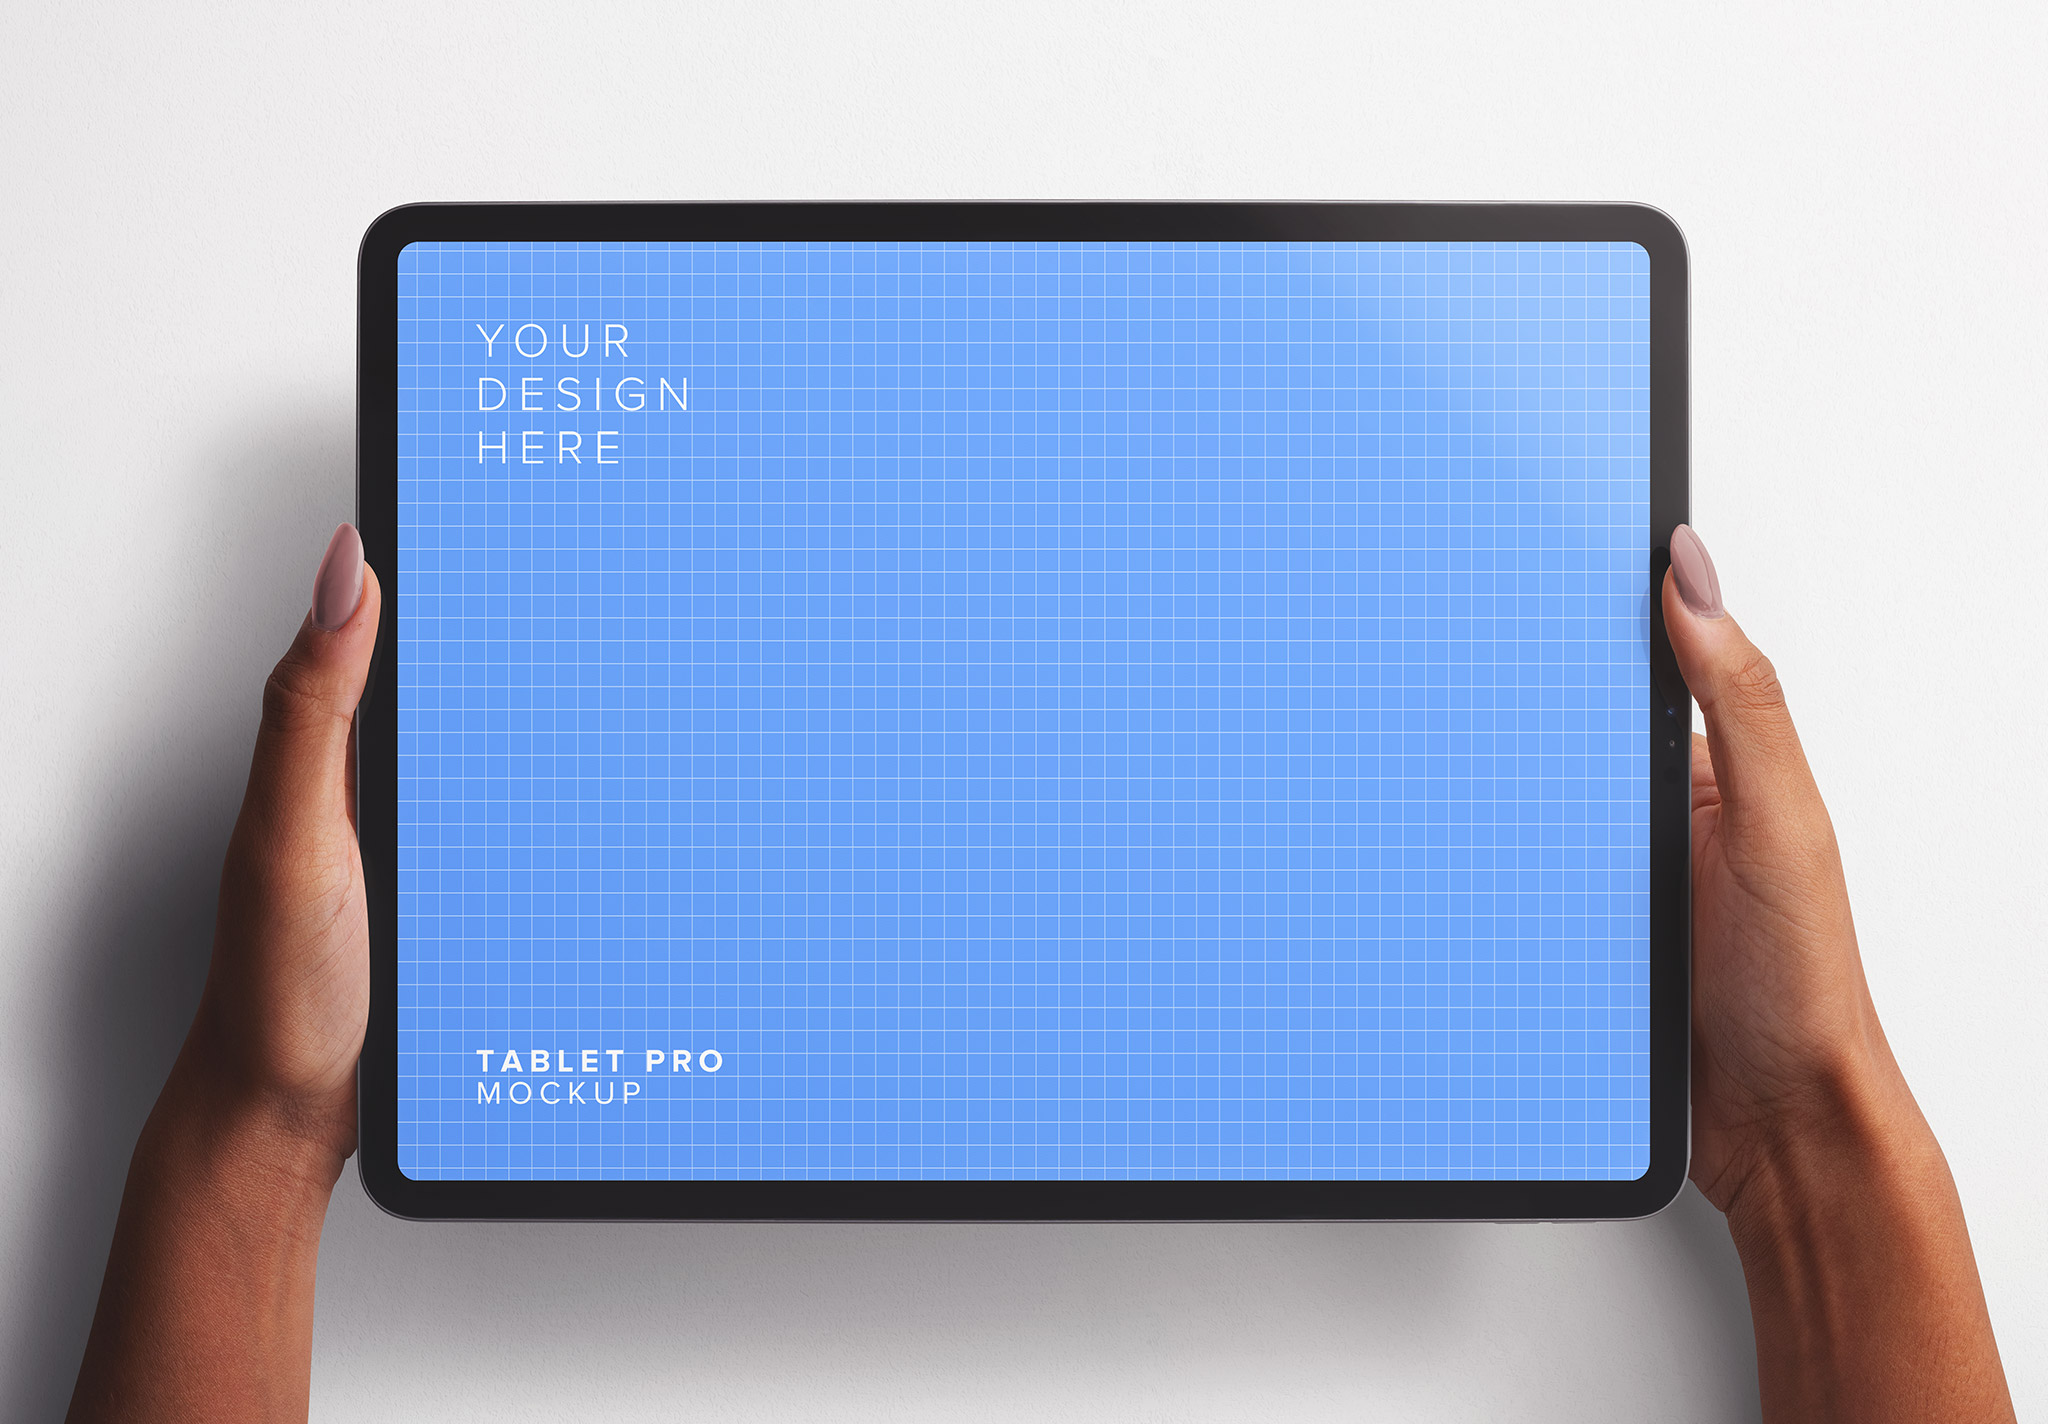 Hands Holding Tablet Pro Mockup Thumbnail